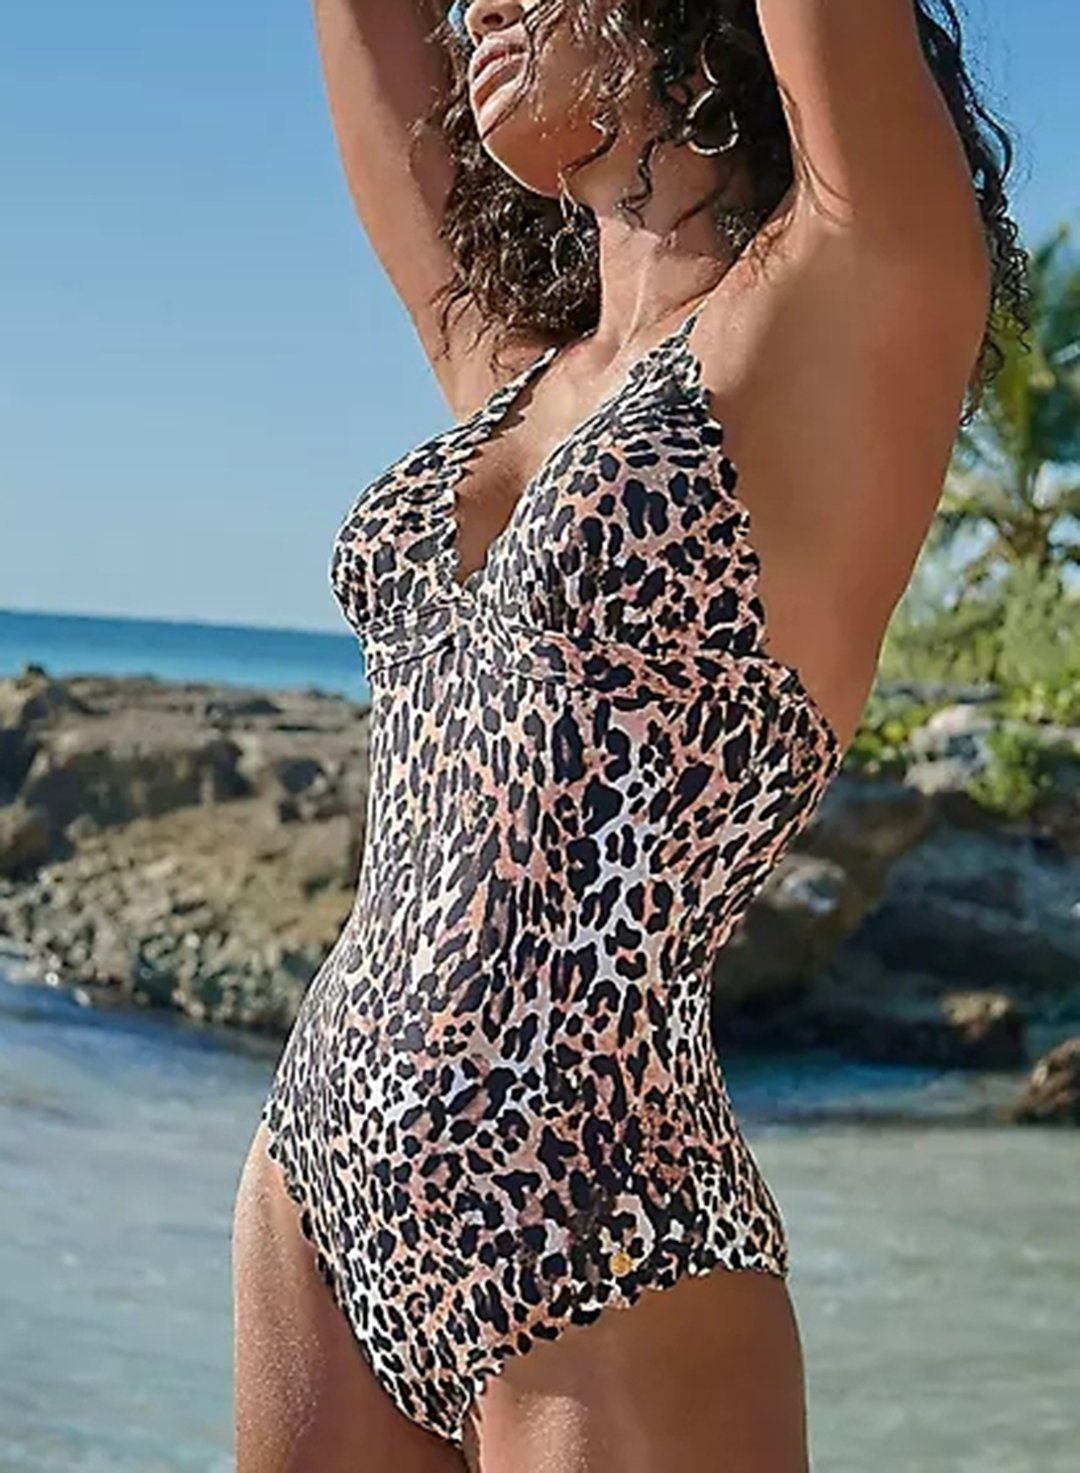 Leopard Women's Swimsuits Leopard Padded Spaghetti Halter Sleeveless Adjustable Wire-free Knot Sexy One-piece Suit LC44794-20